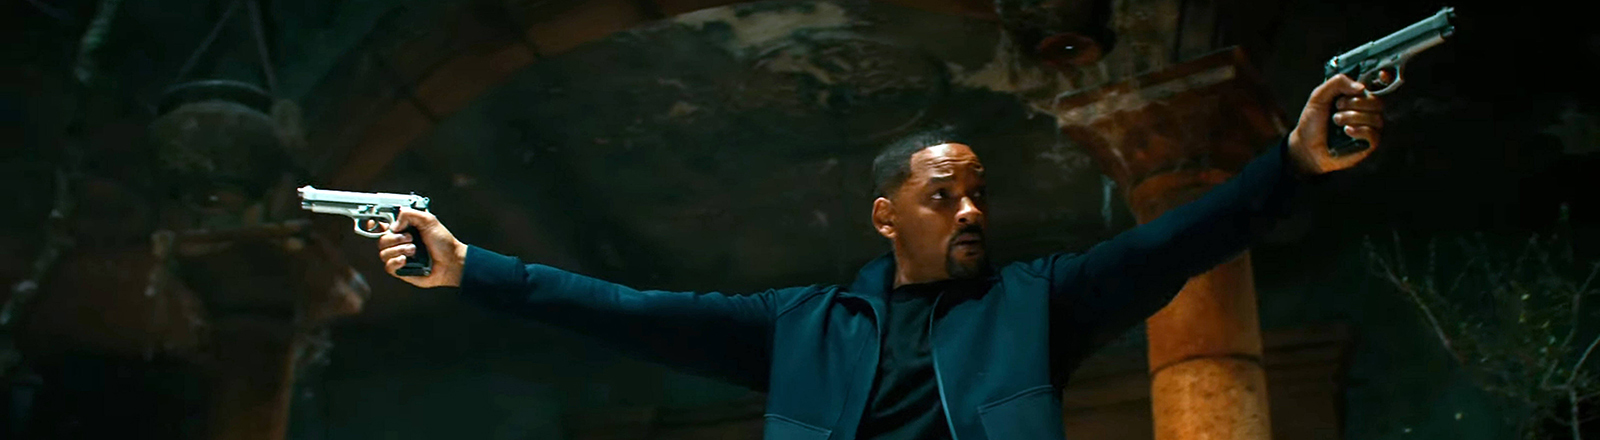 Will Smith in Bad Boys for Life